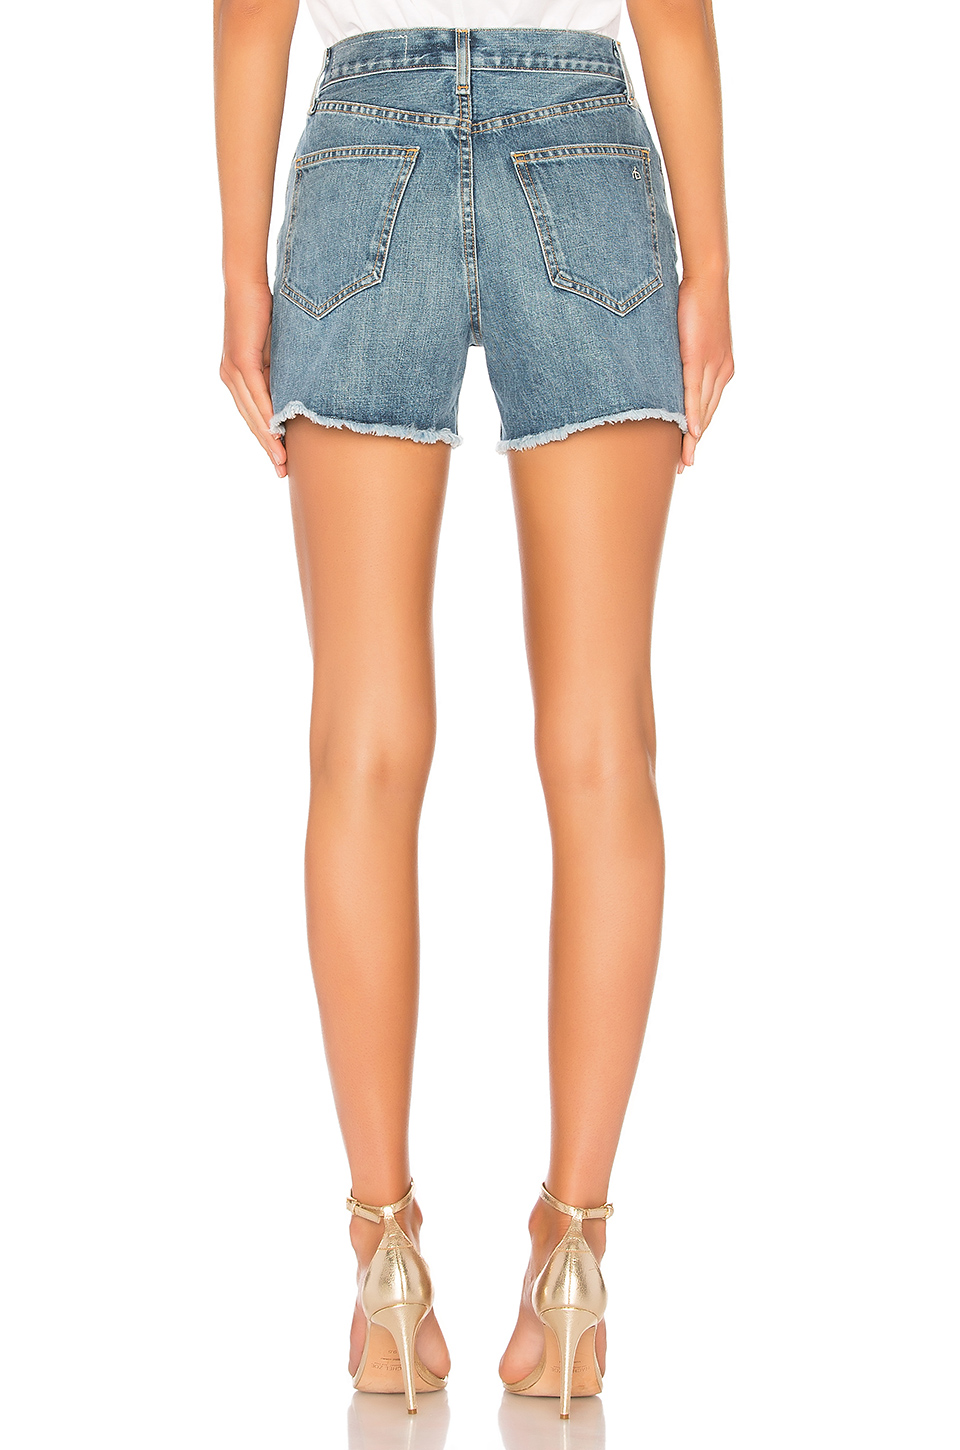 c166481826 Buy Original rag & bone/JEAN Torti Short at Indonesia | BOBOBOBO